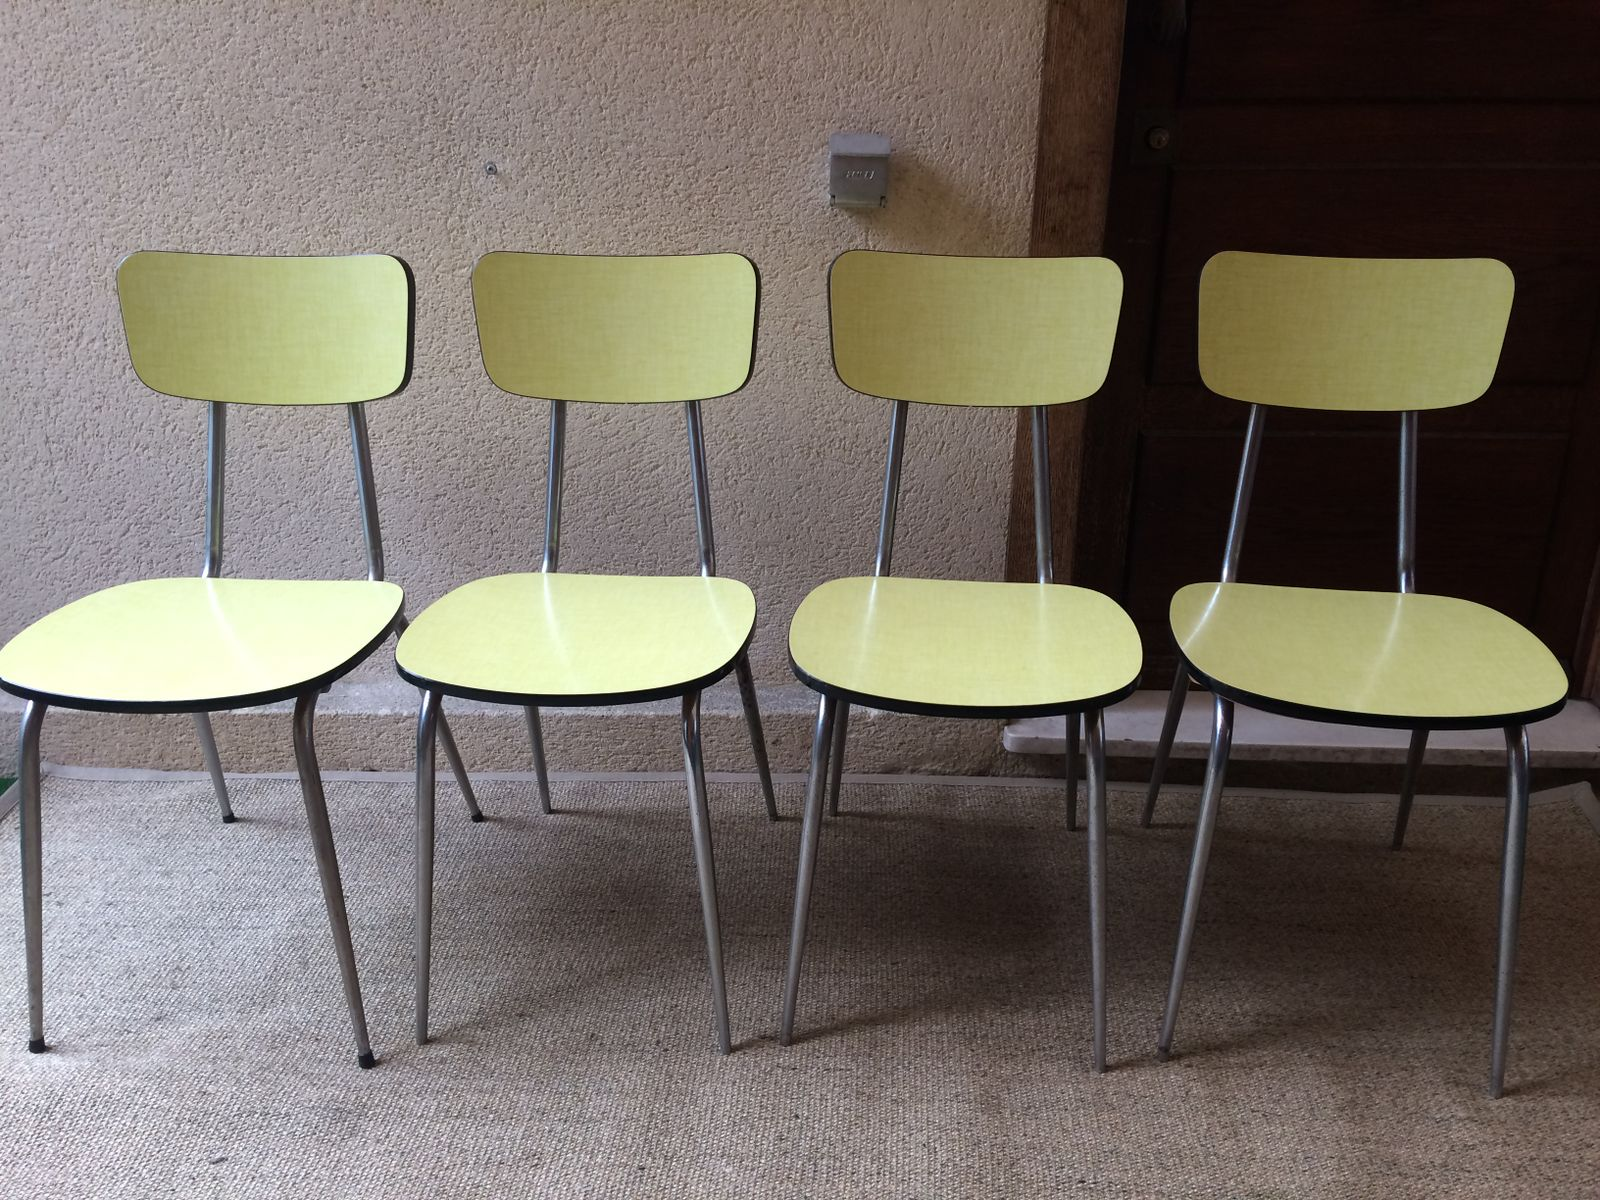 Vintage Kitchen Chairs From Roc Set Of 4 For Sale At Pamono